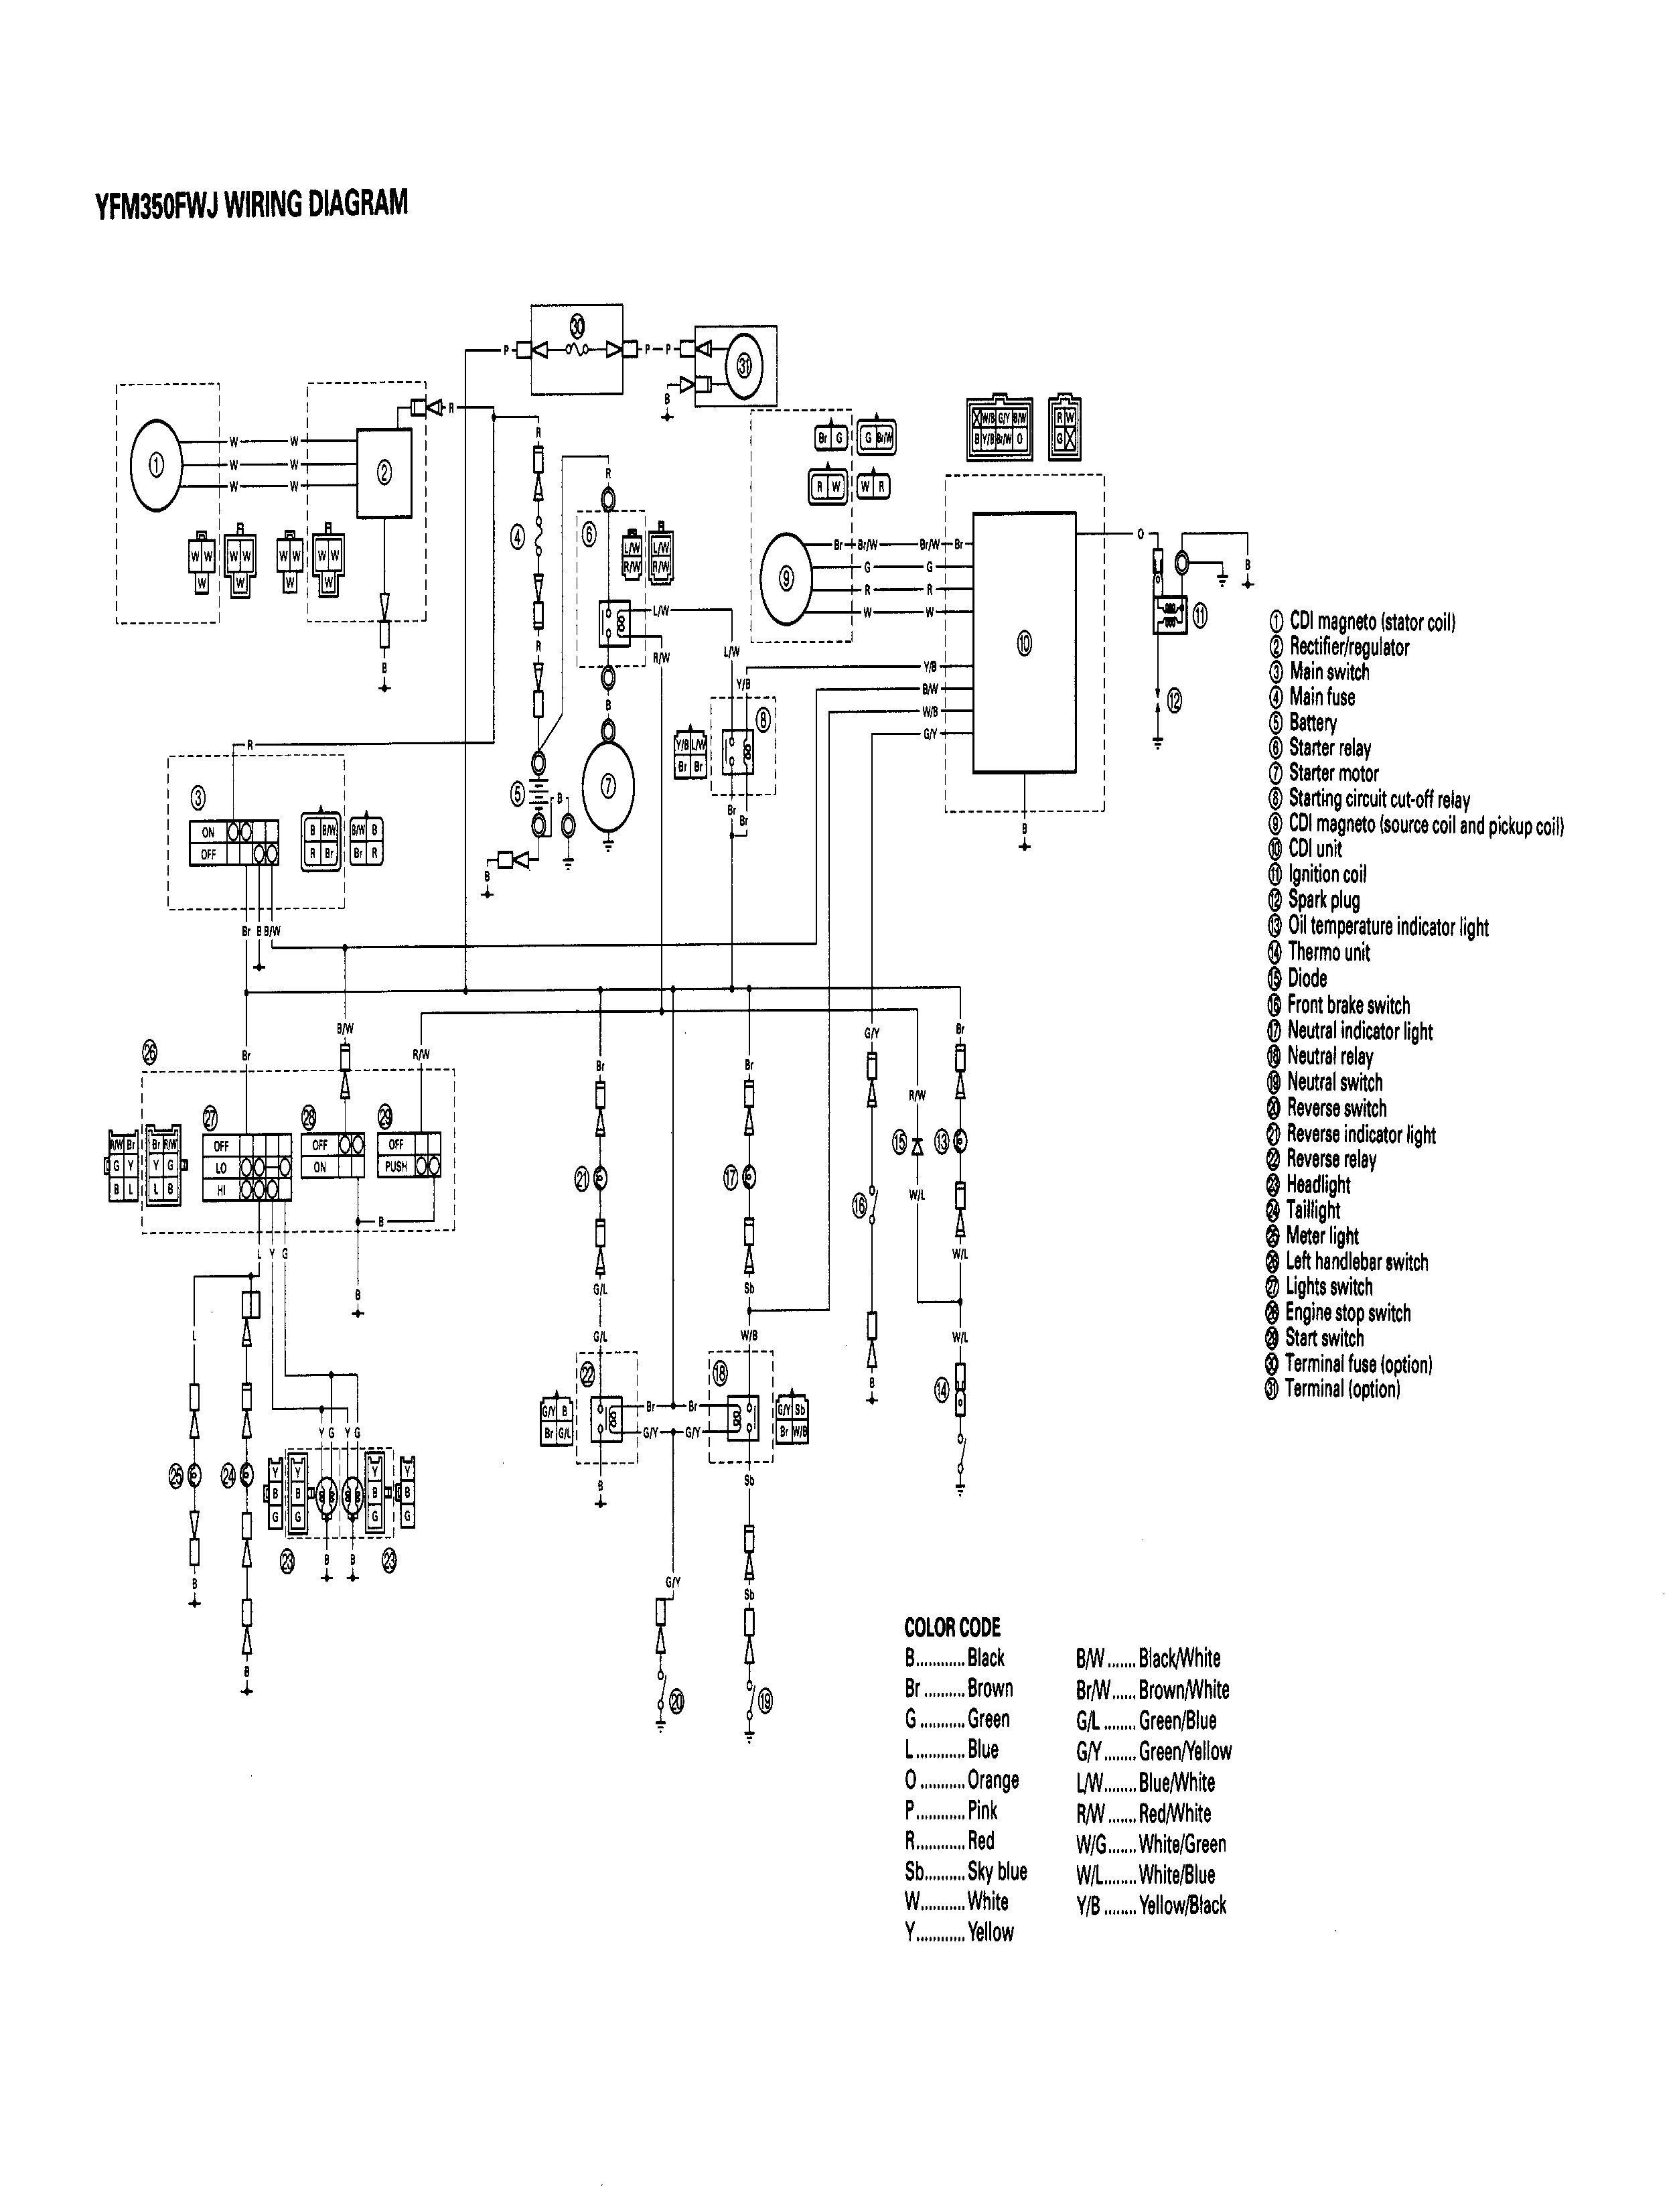 01 Yamaha Big Bear Wiring Diagram